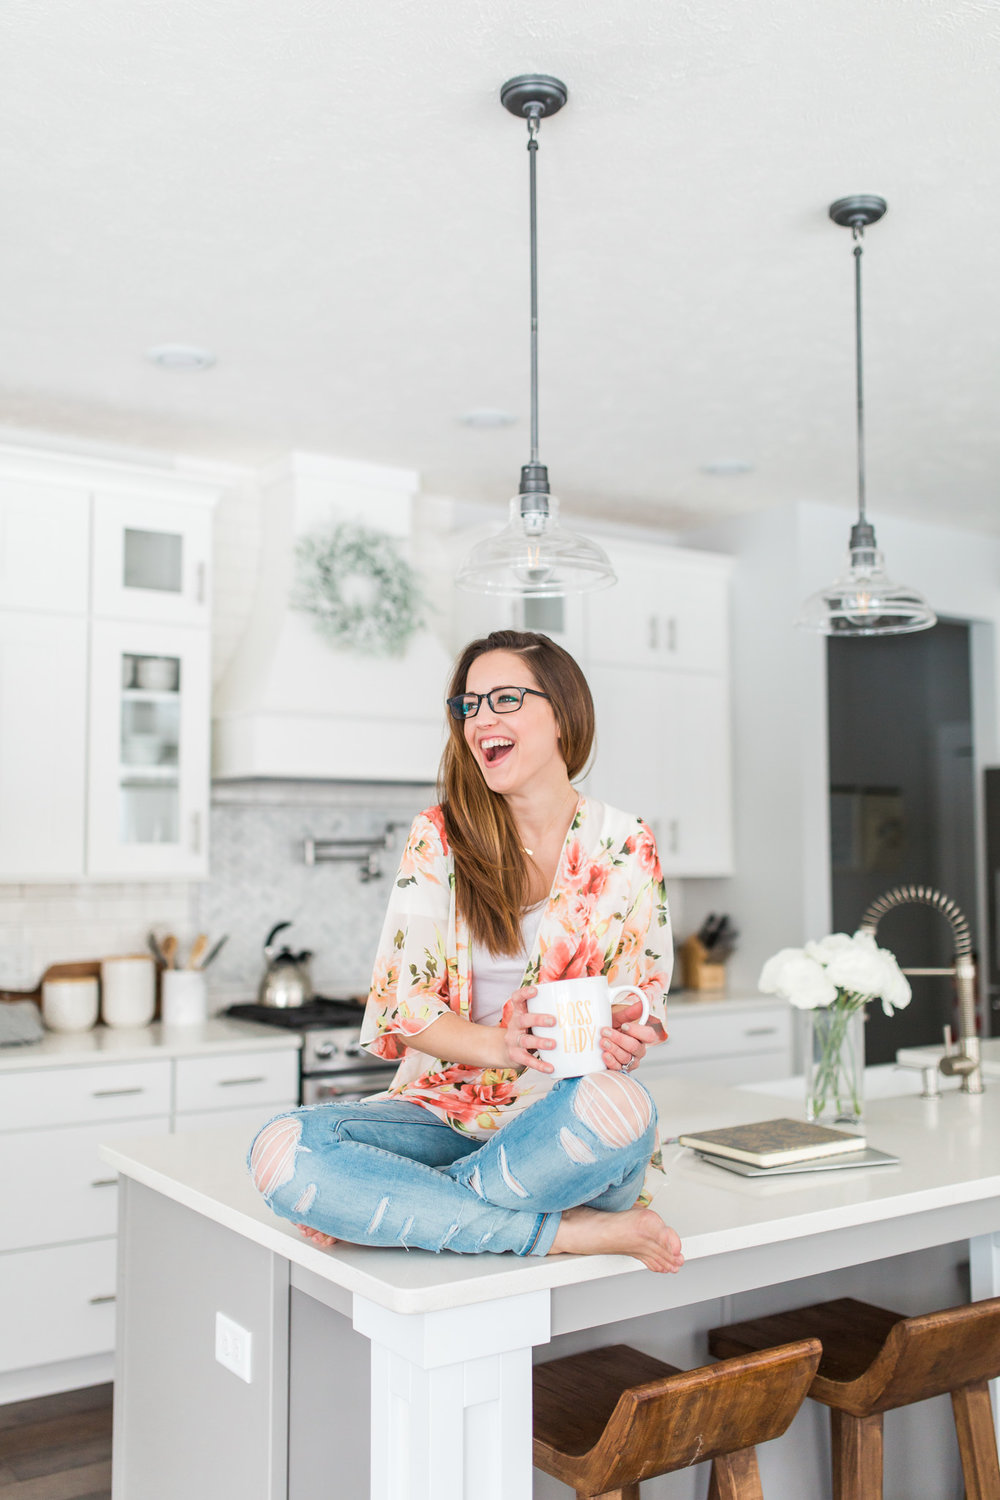 Lifestyle Branding Session for Creative Business Owners | In-Home Session | Natural Light Photography | Camera Settings | Laurenda Marie Photography | Grand Rapids, Michigan